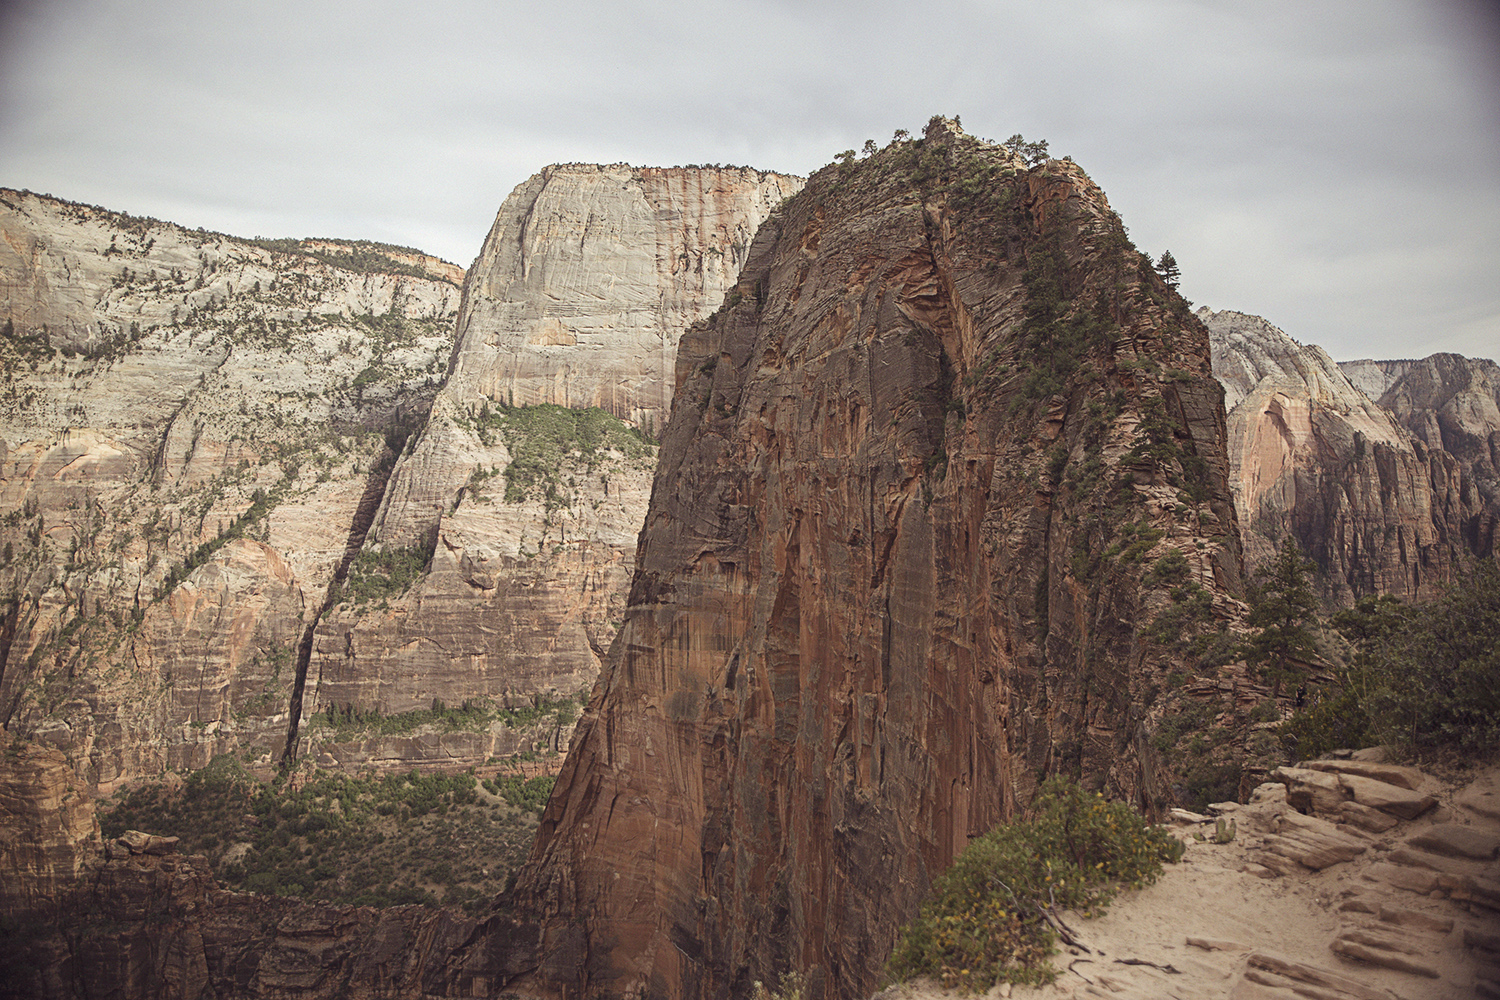 2017-06-08_Zion_Nationalpark_026.jpg